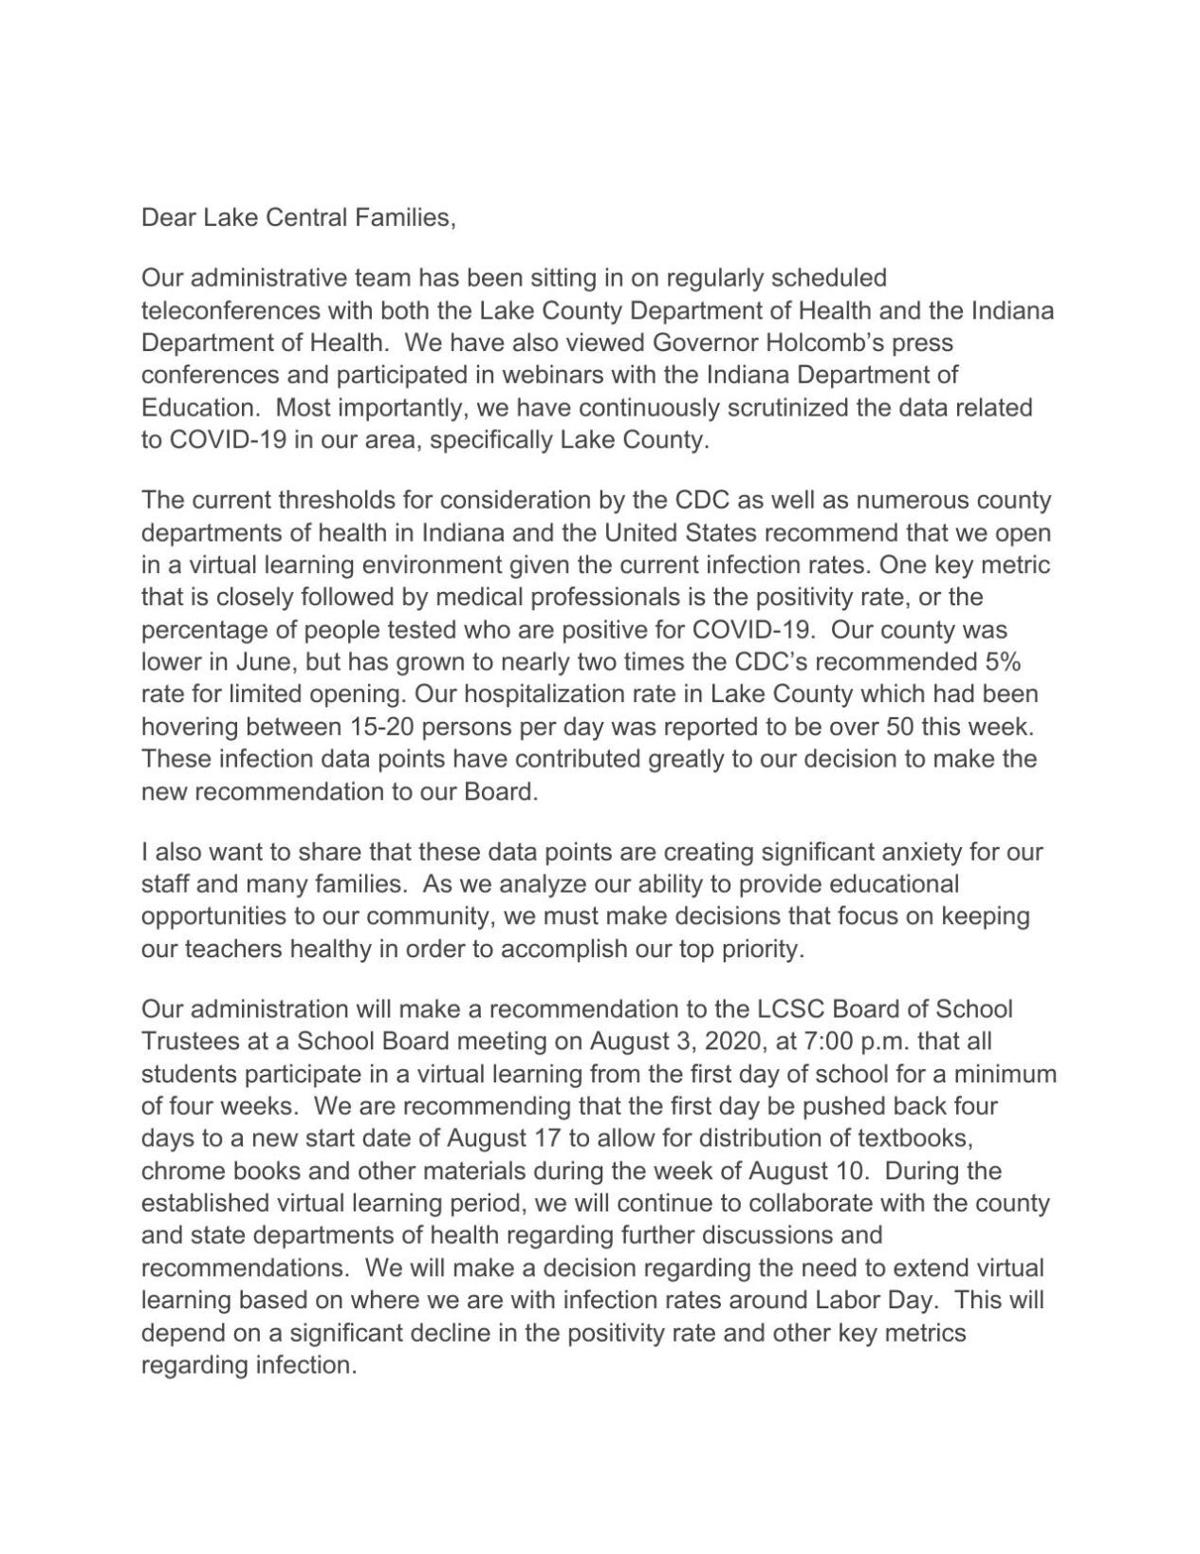 Lake Central July 31, 2020 letter to families